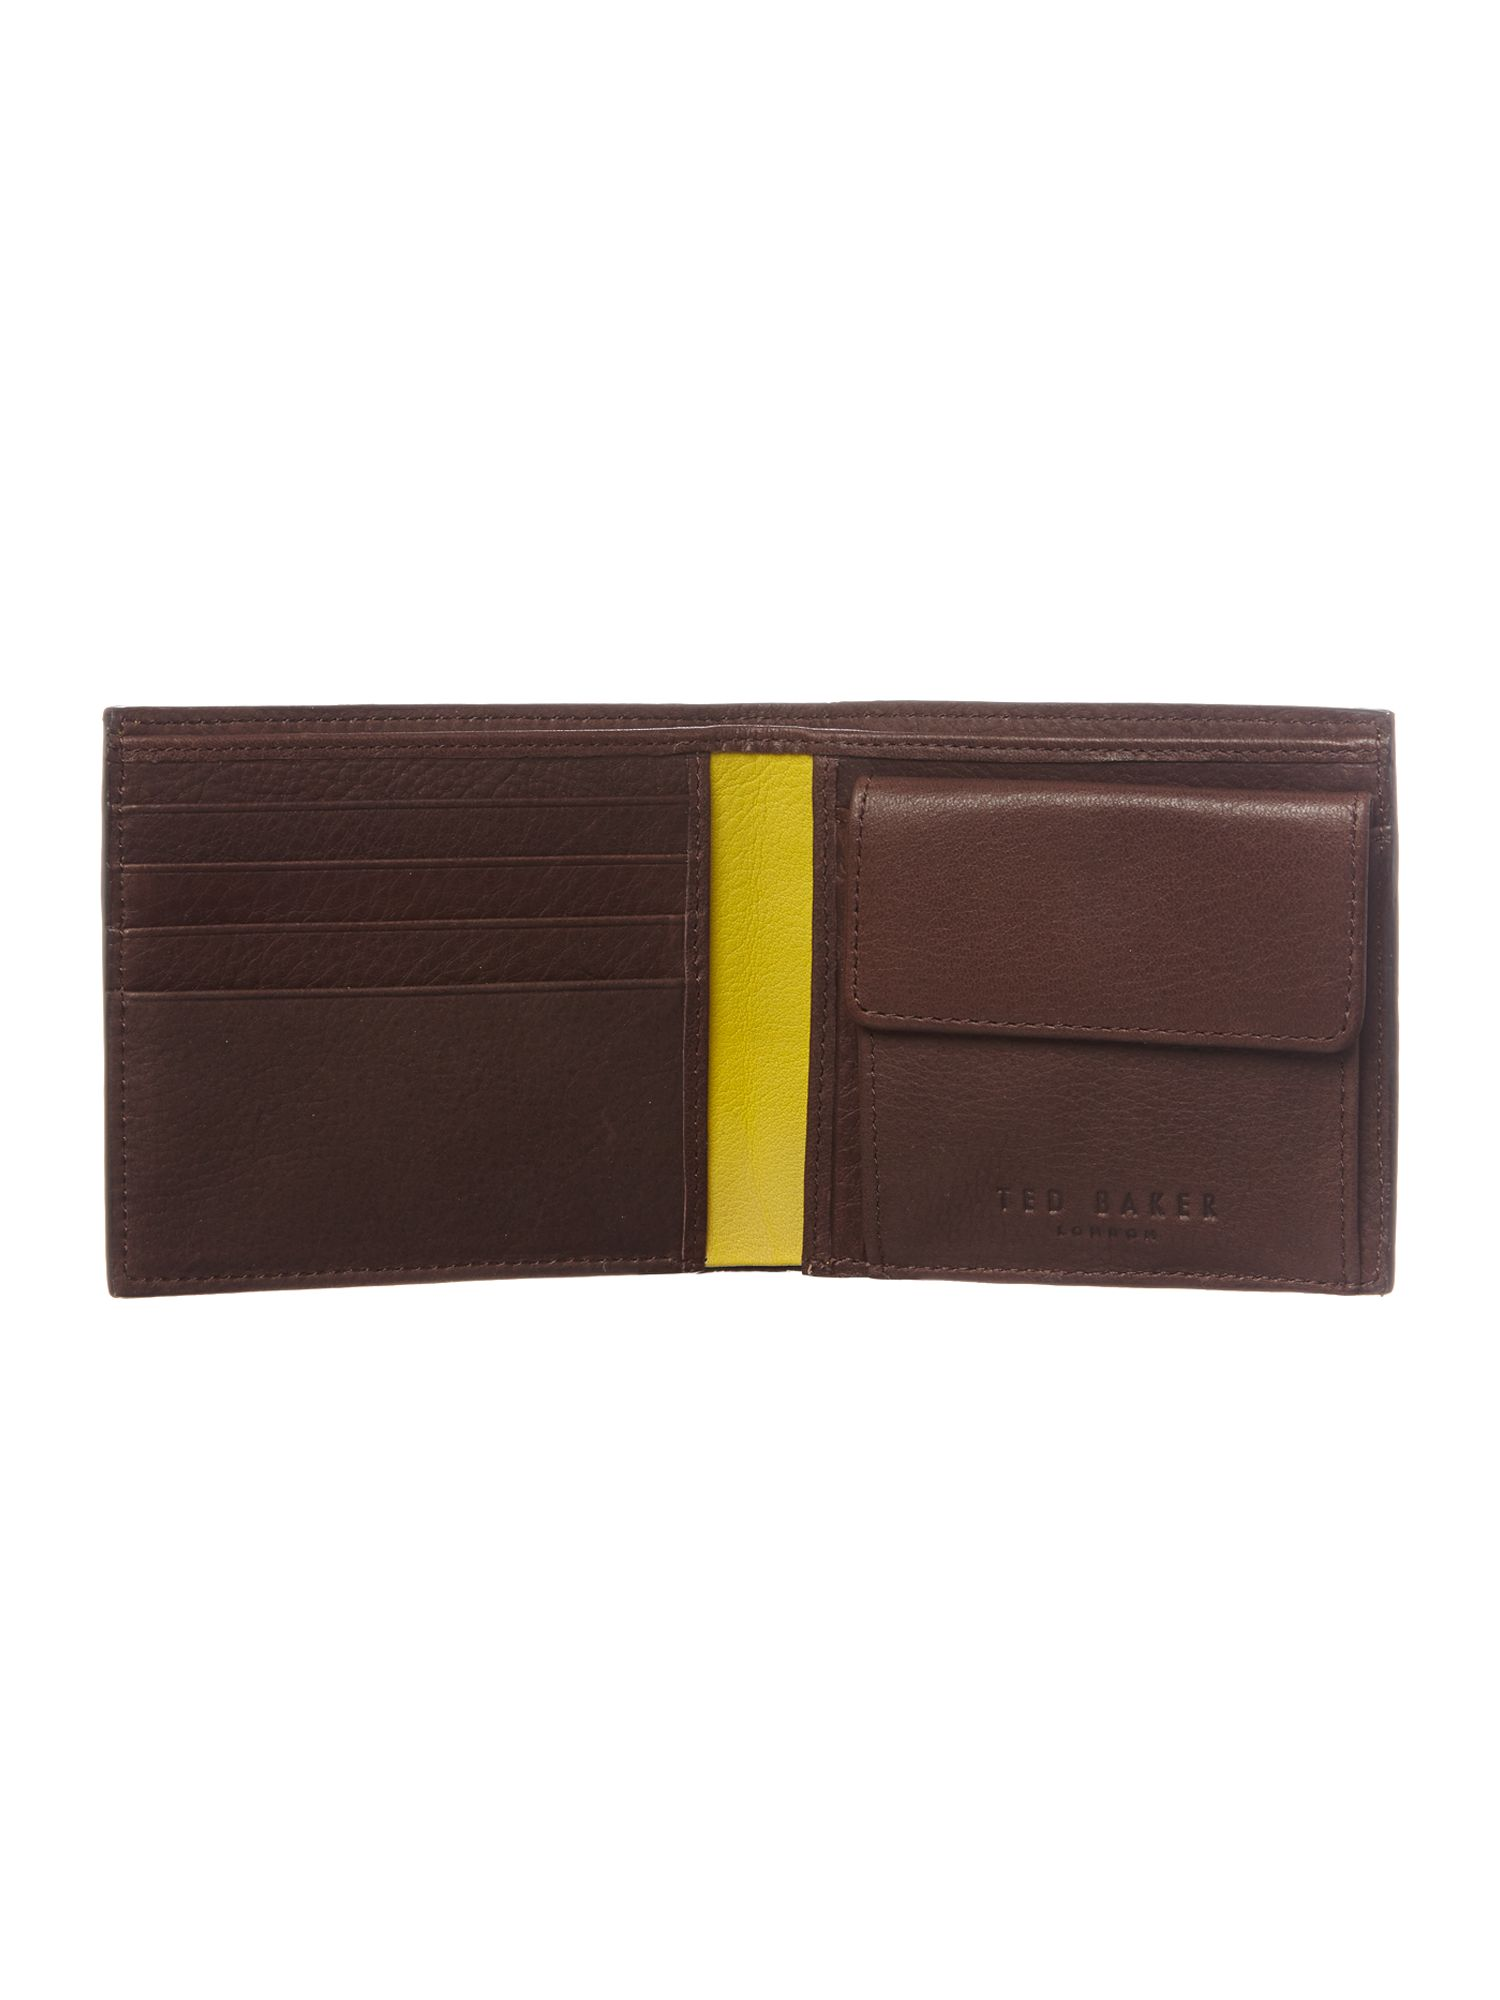 Bright leather bifold wallet